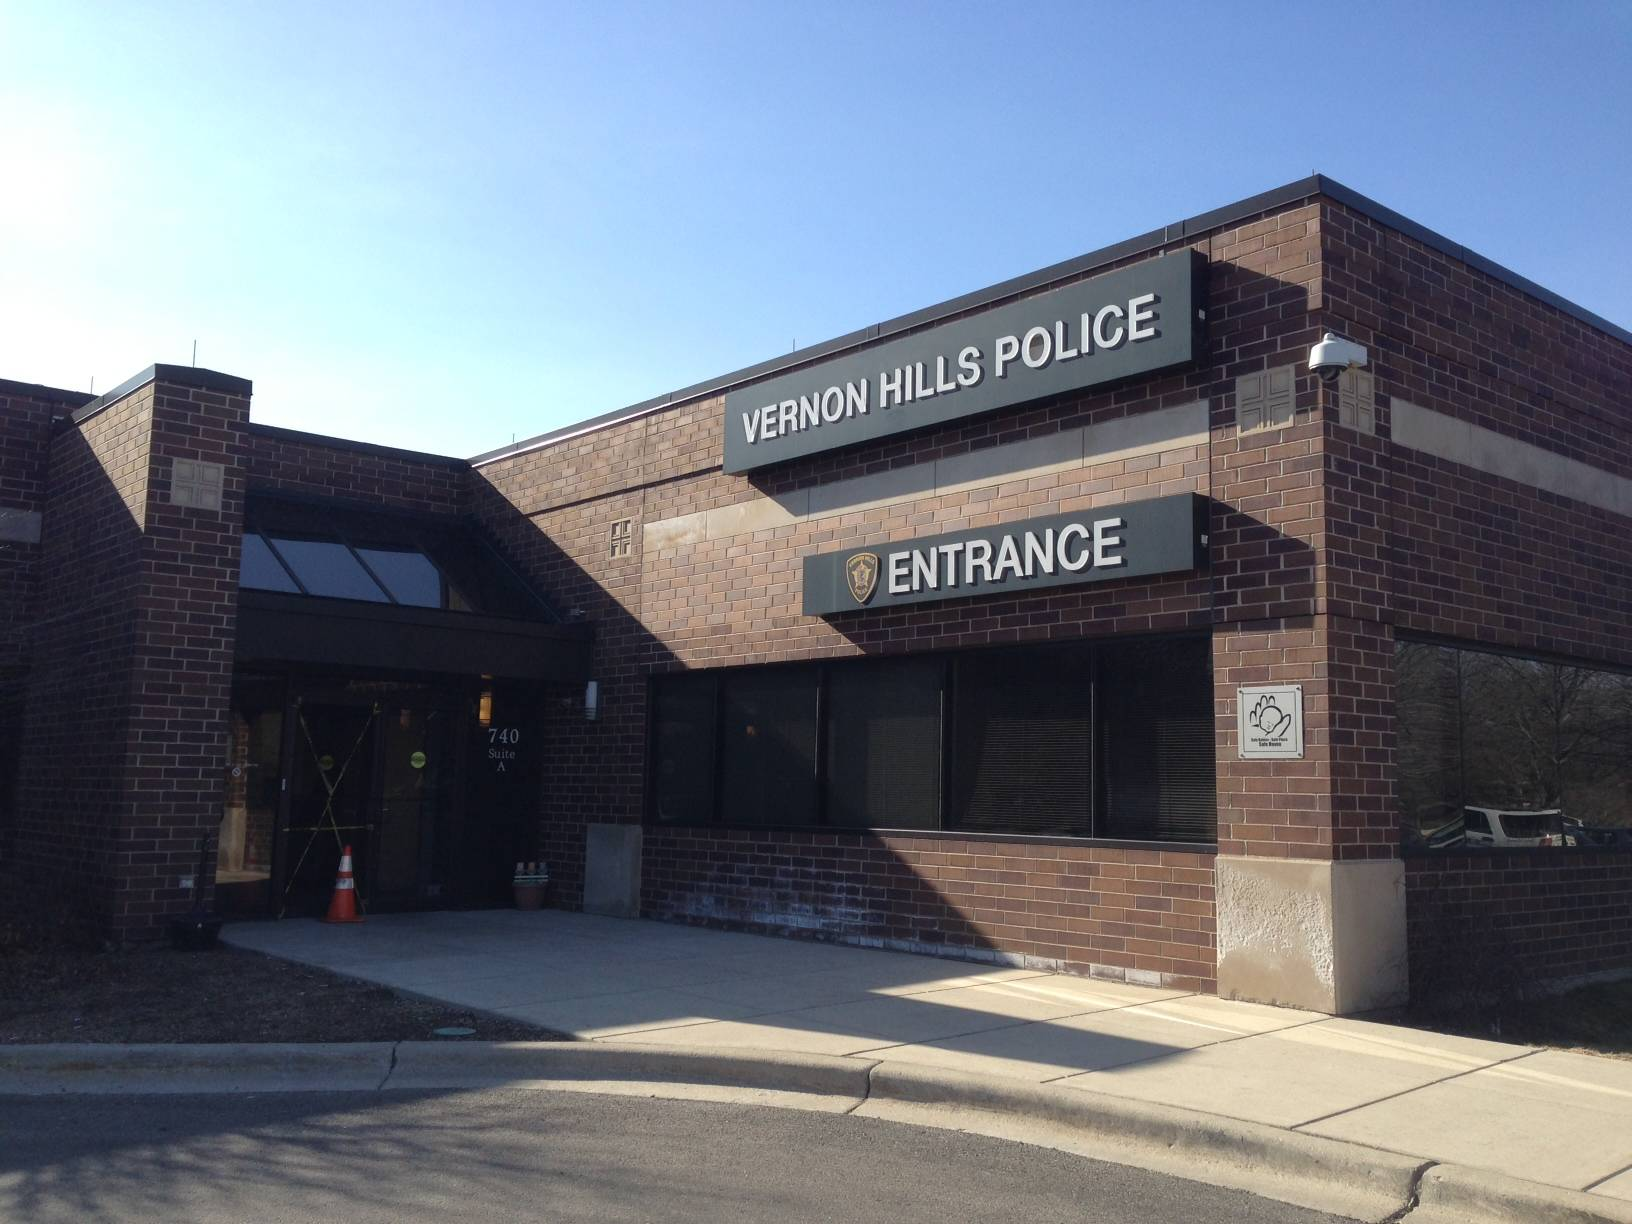 A $3.5 million plan to renovate the Vernon Hills police station, which was built in 1992, has moved from the discussion stage as trustees tentatively agreed to pursue a contract to prepare bid specifications for the work.